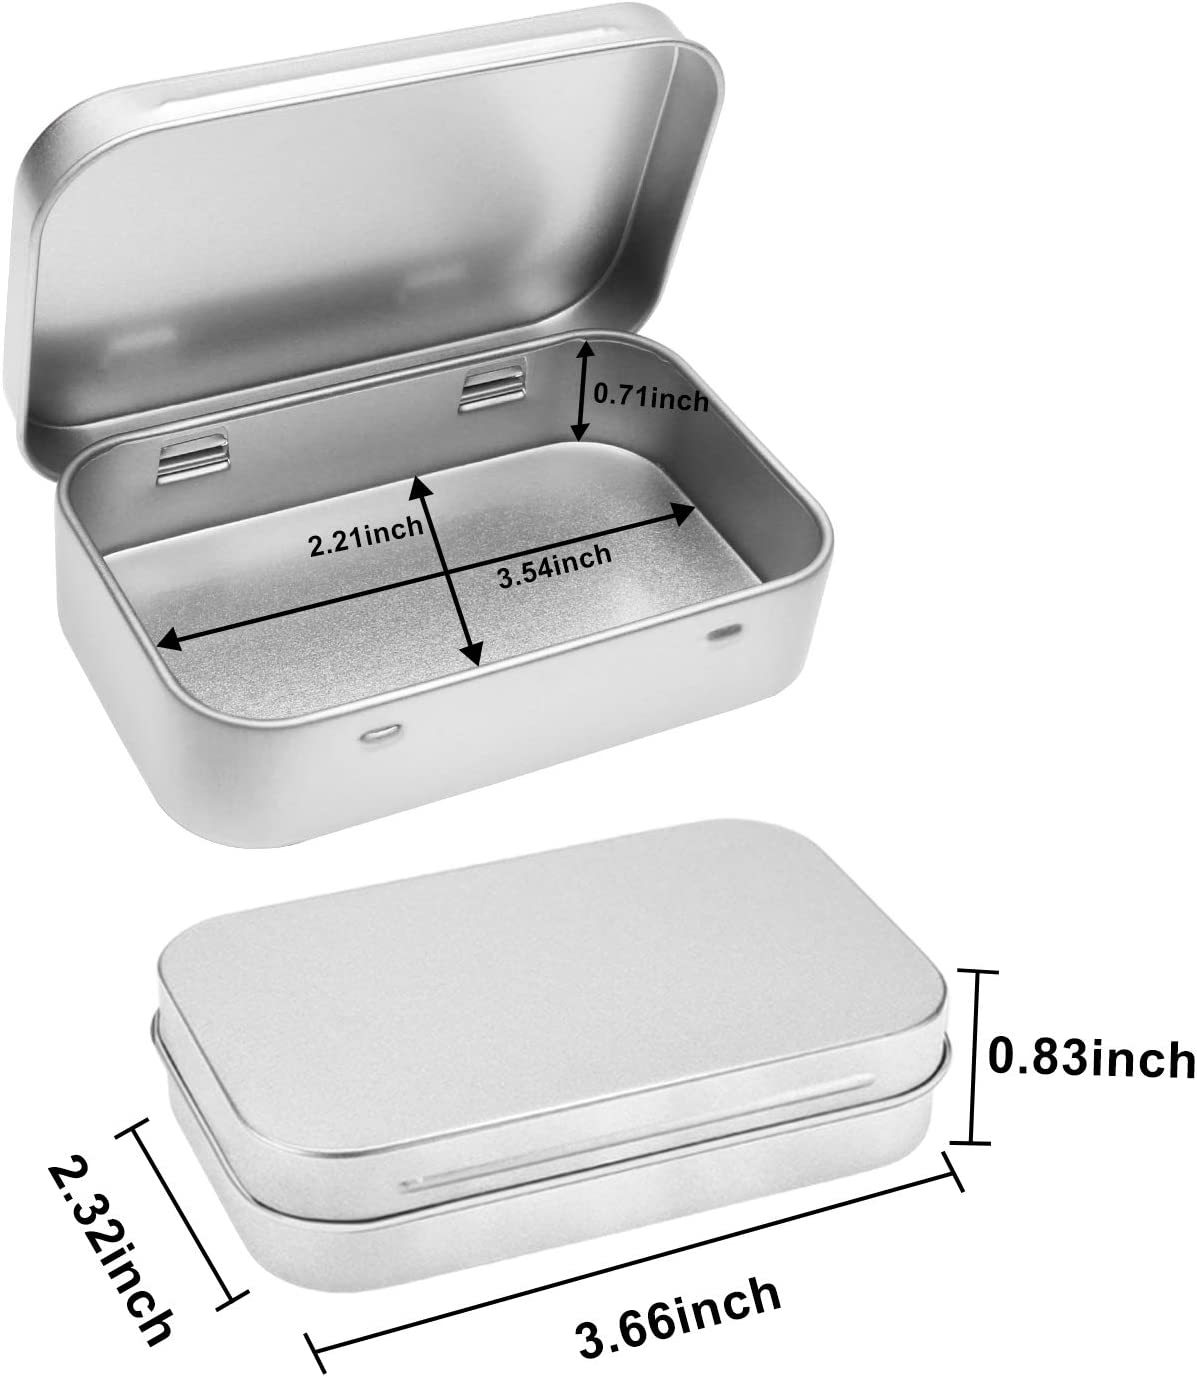 Aybloom Metal Rectangular Empty Hinged Tins 6 Pack Silver /& 6 Pack Black Mini Portable Box Containers Small Storage Kit /& Home Organizer